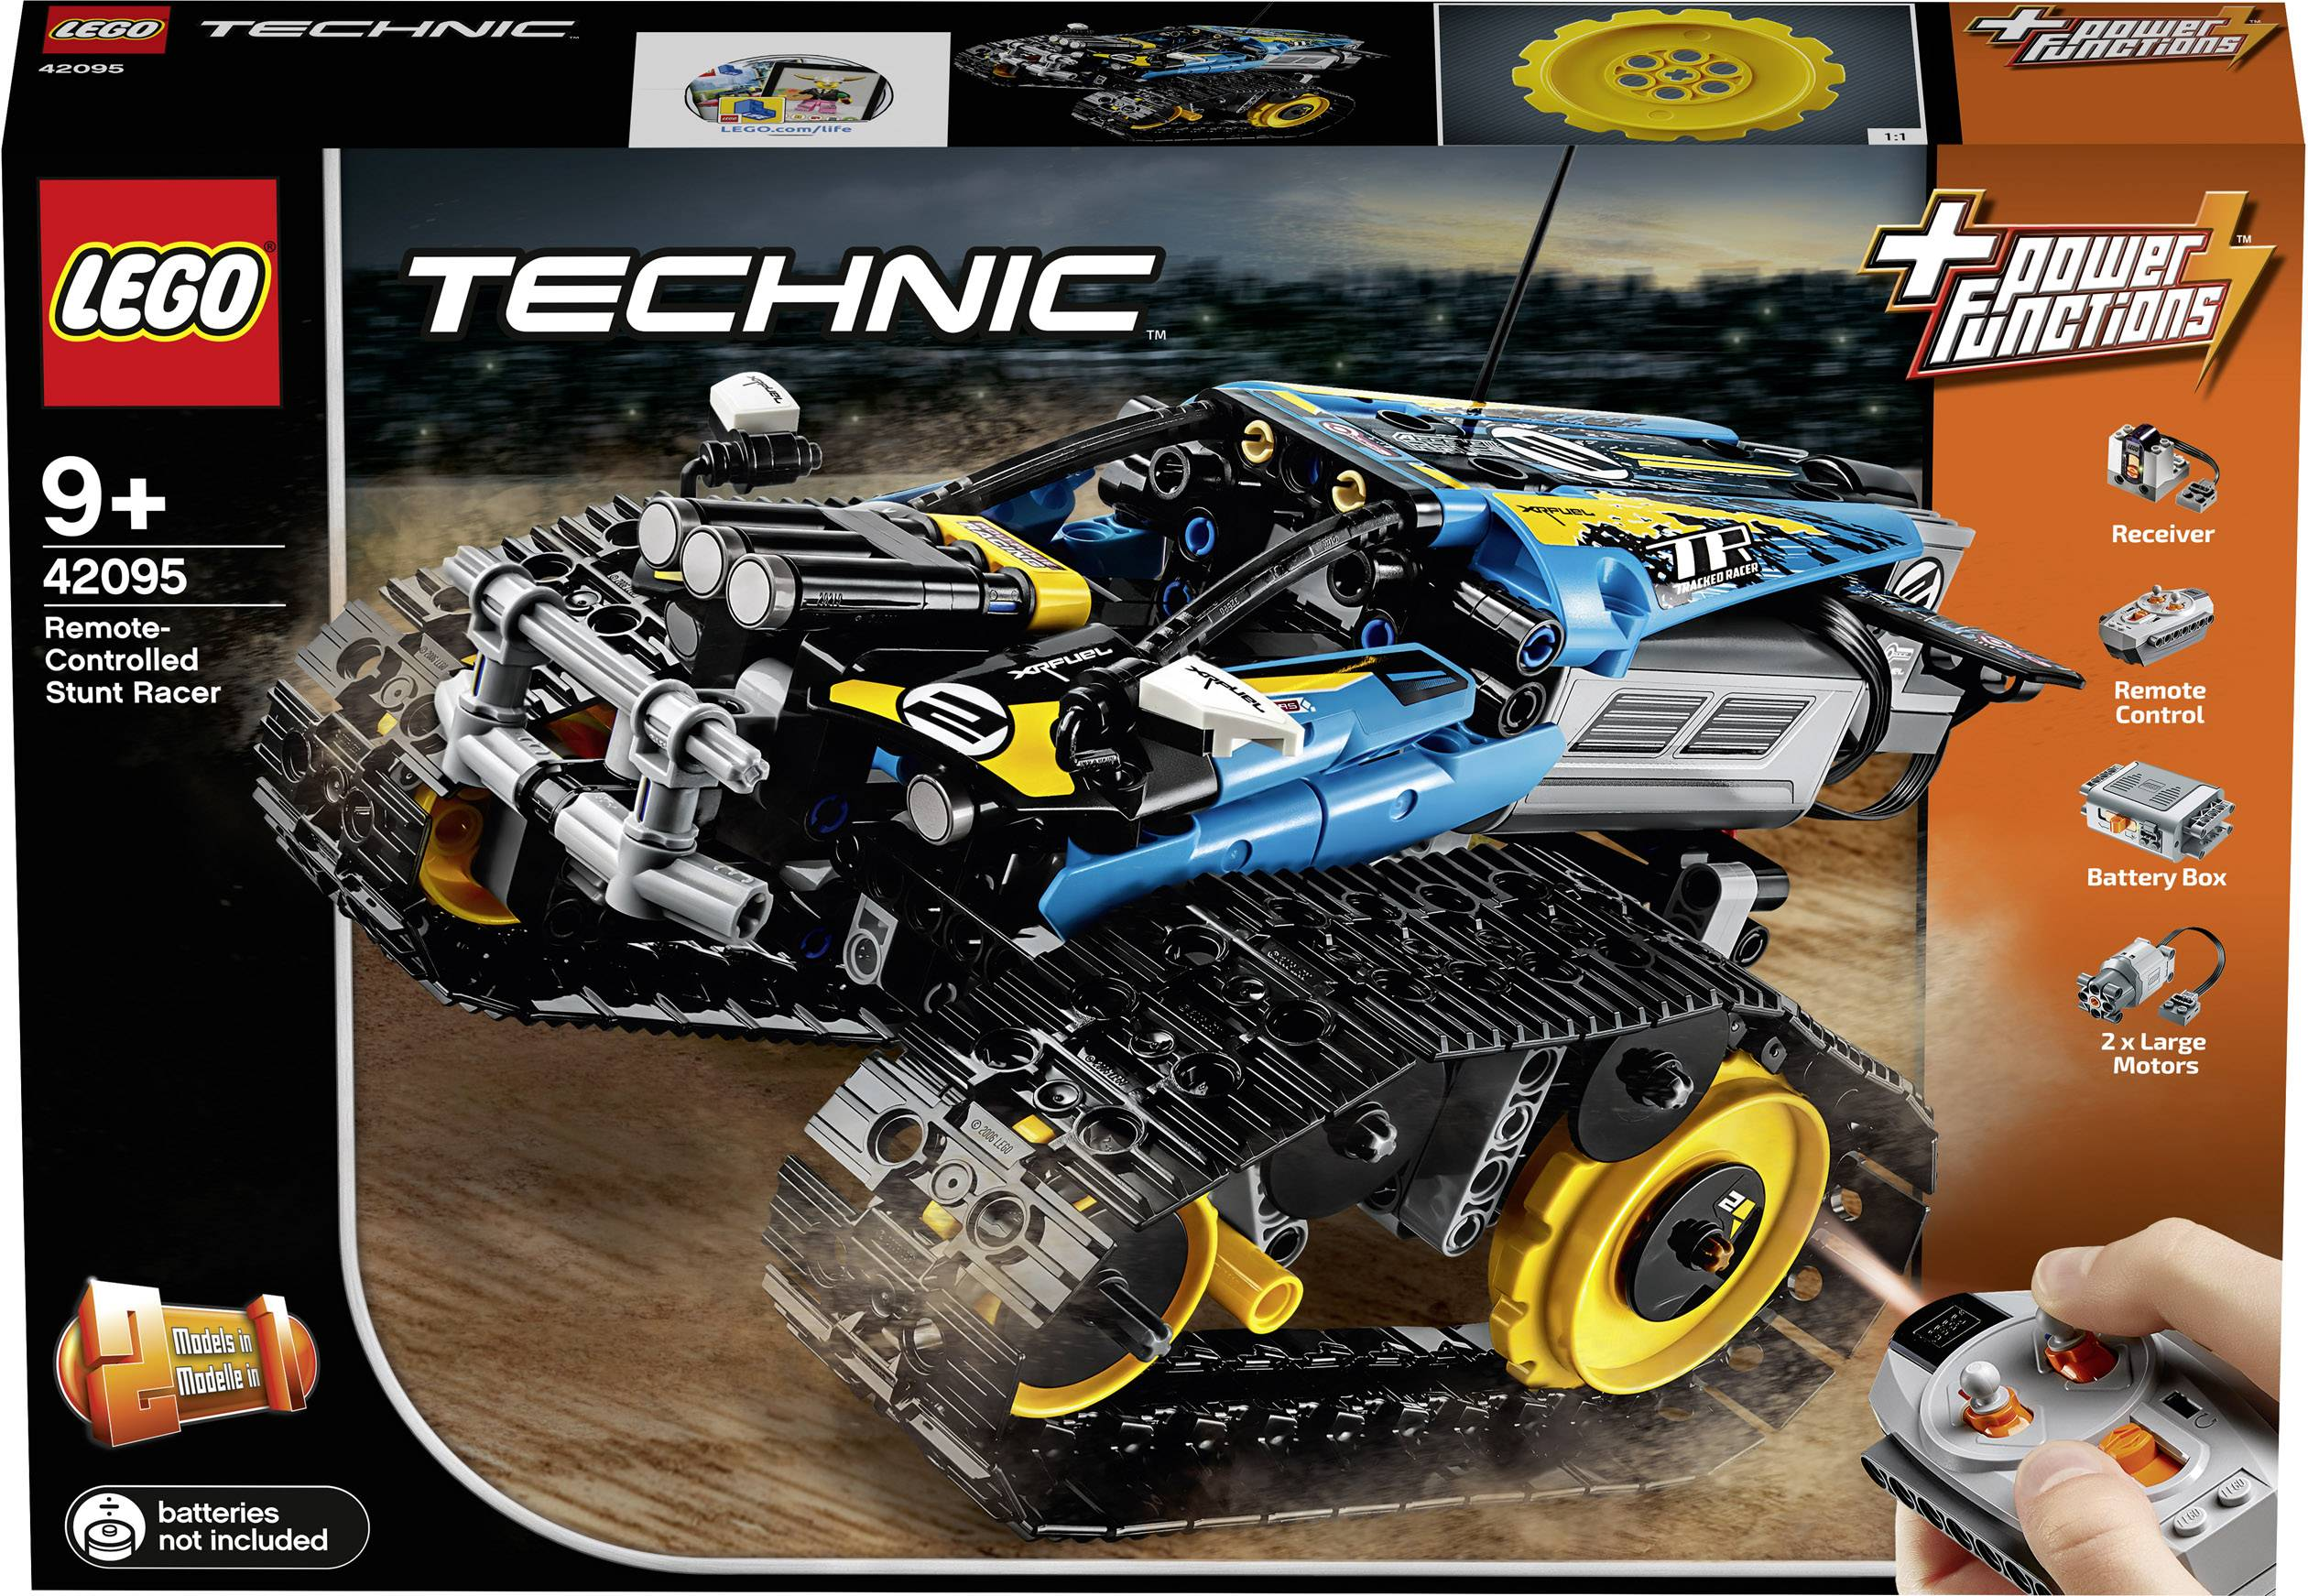 Remote-Controlled Stunt Racer LEGO Brand New LEGO-42095